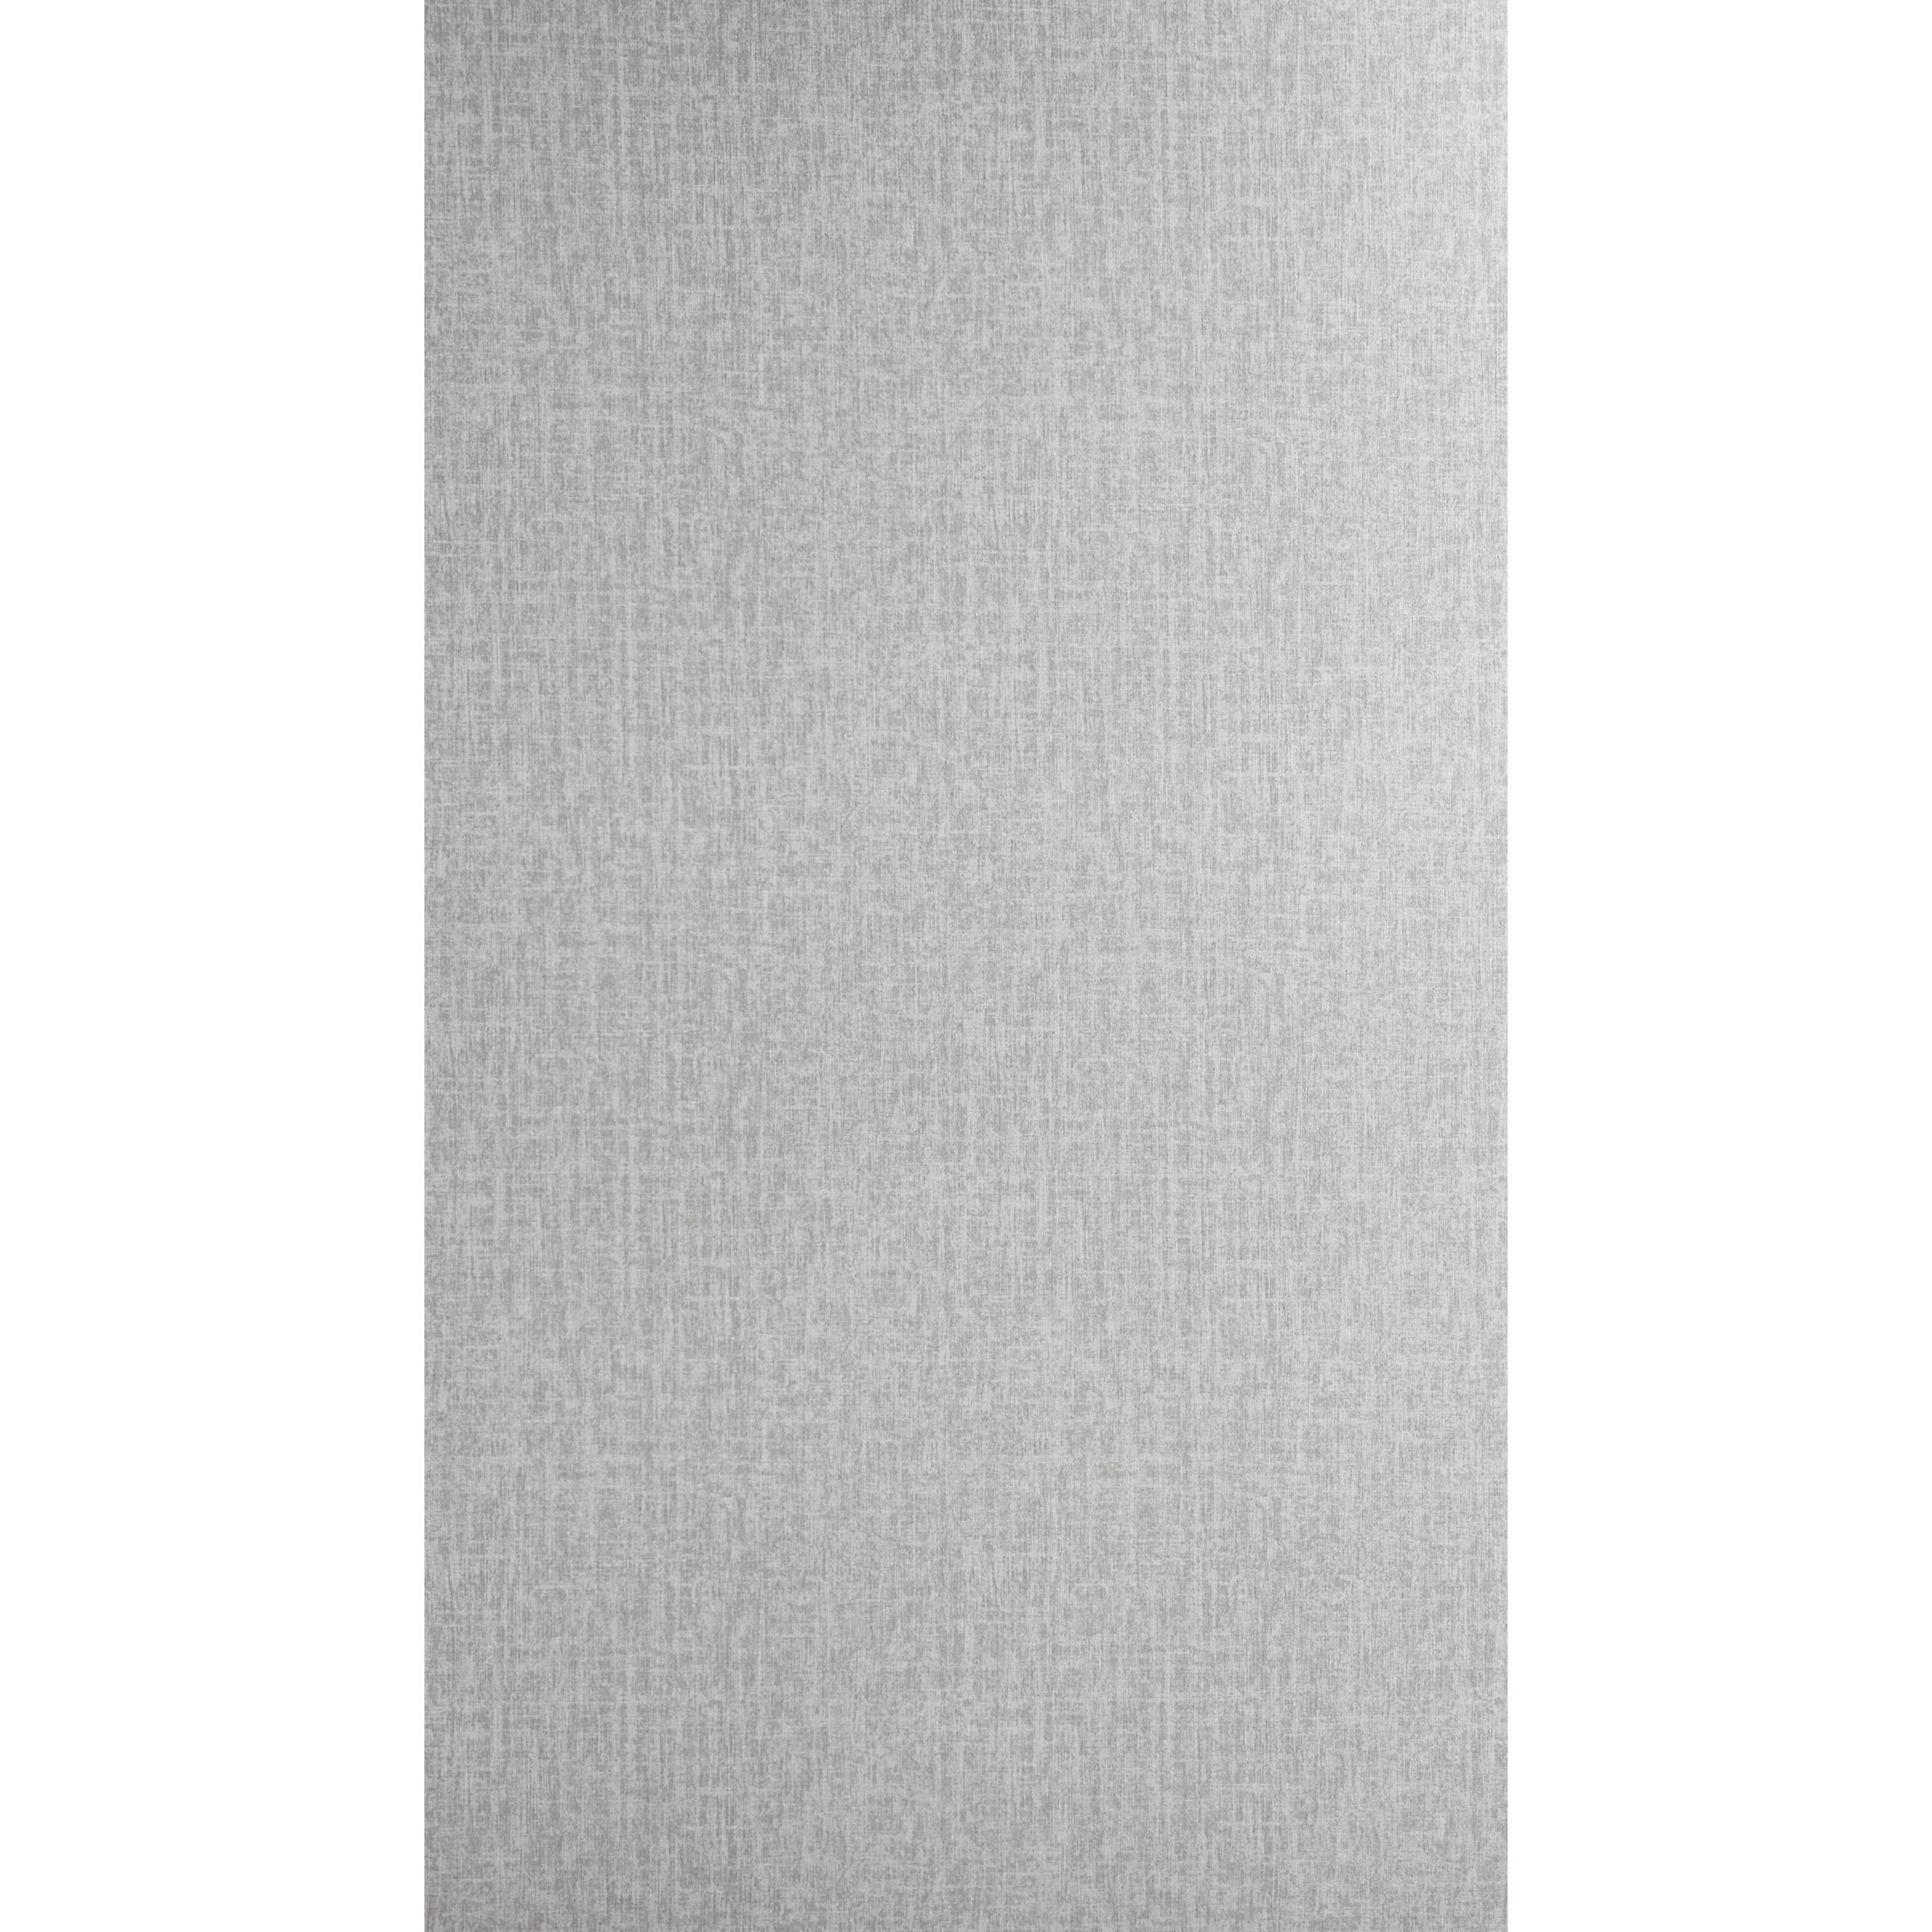 Design Project by John Lewis Design Project by John Lewis No.149 Wallpaper, Grey